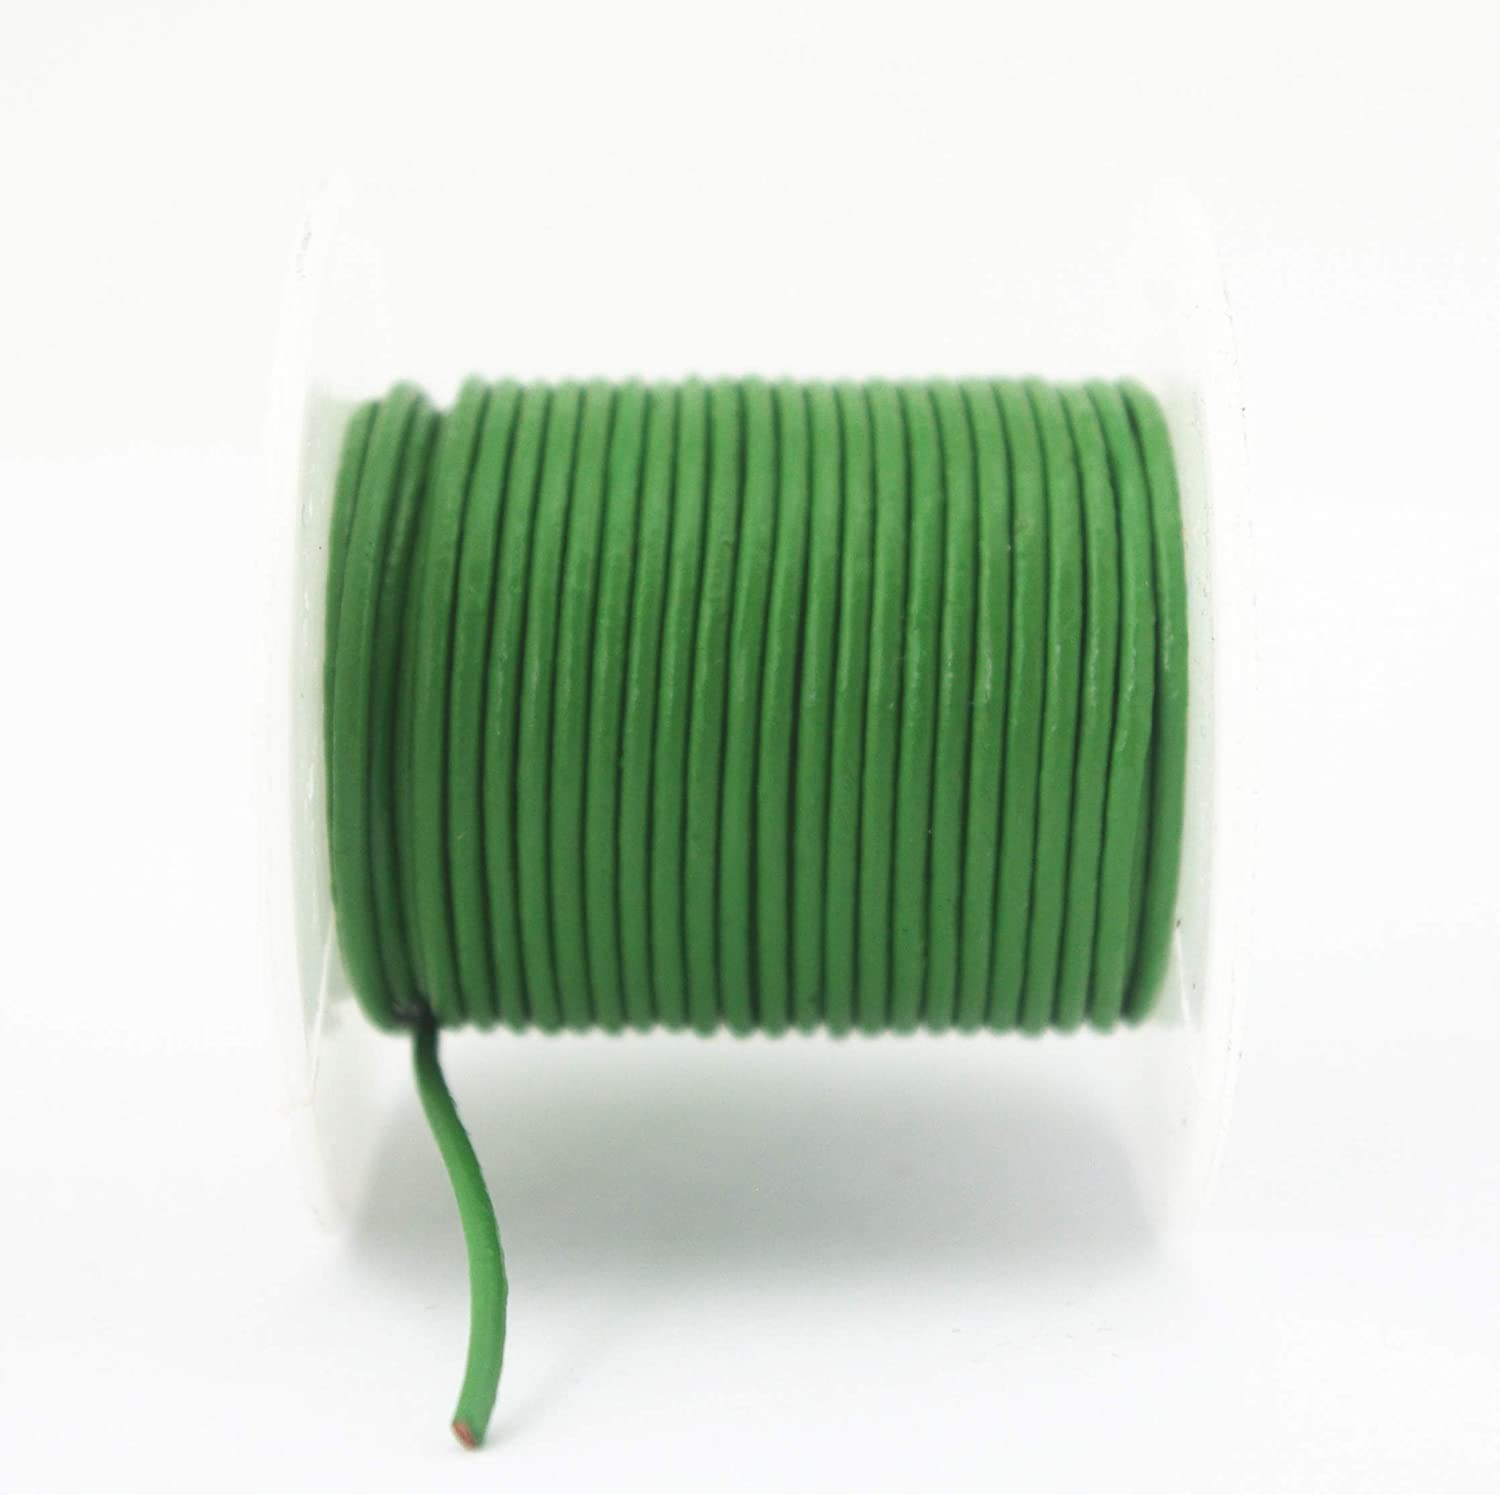 1.5mm, Natural Glory Qin Soft Round Genuine Jewelry Leather Cord Leather Rope Beading String